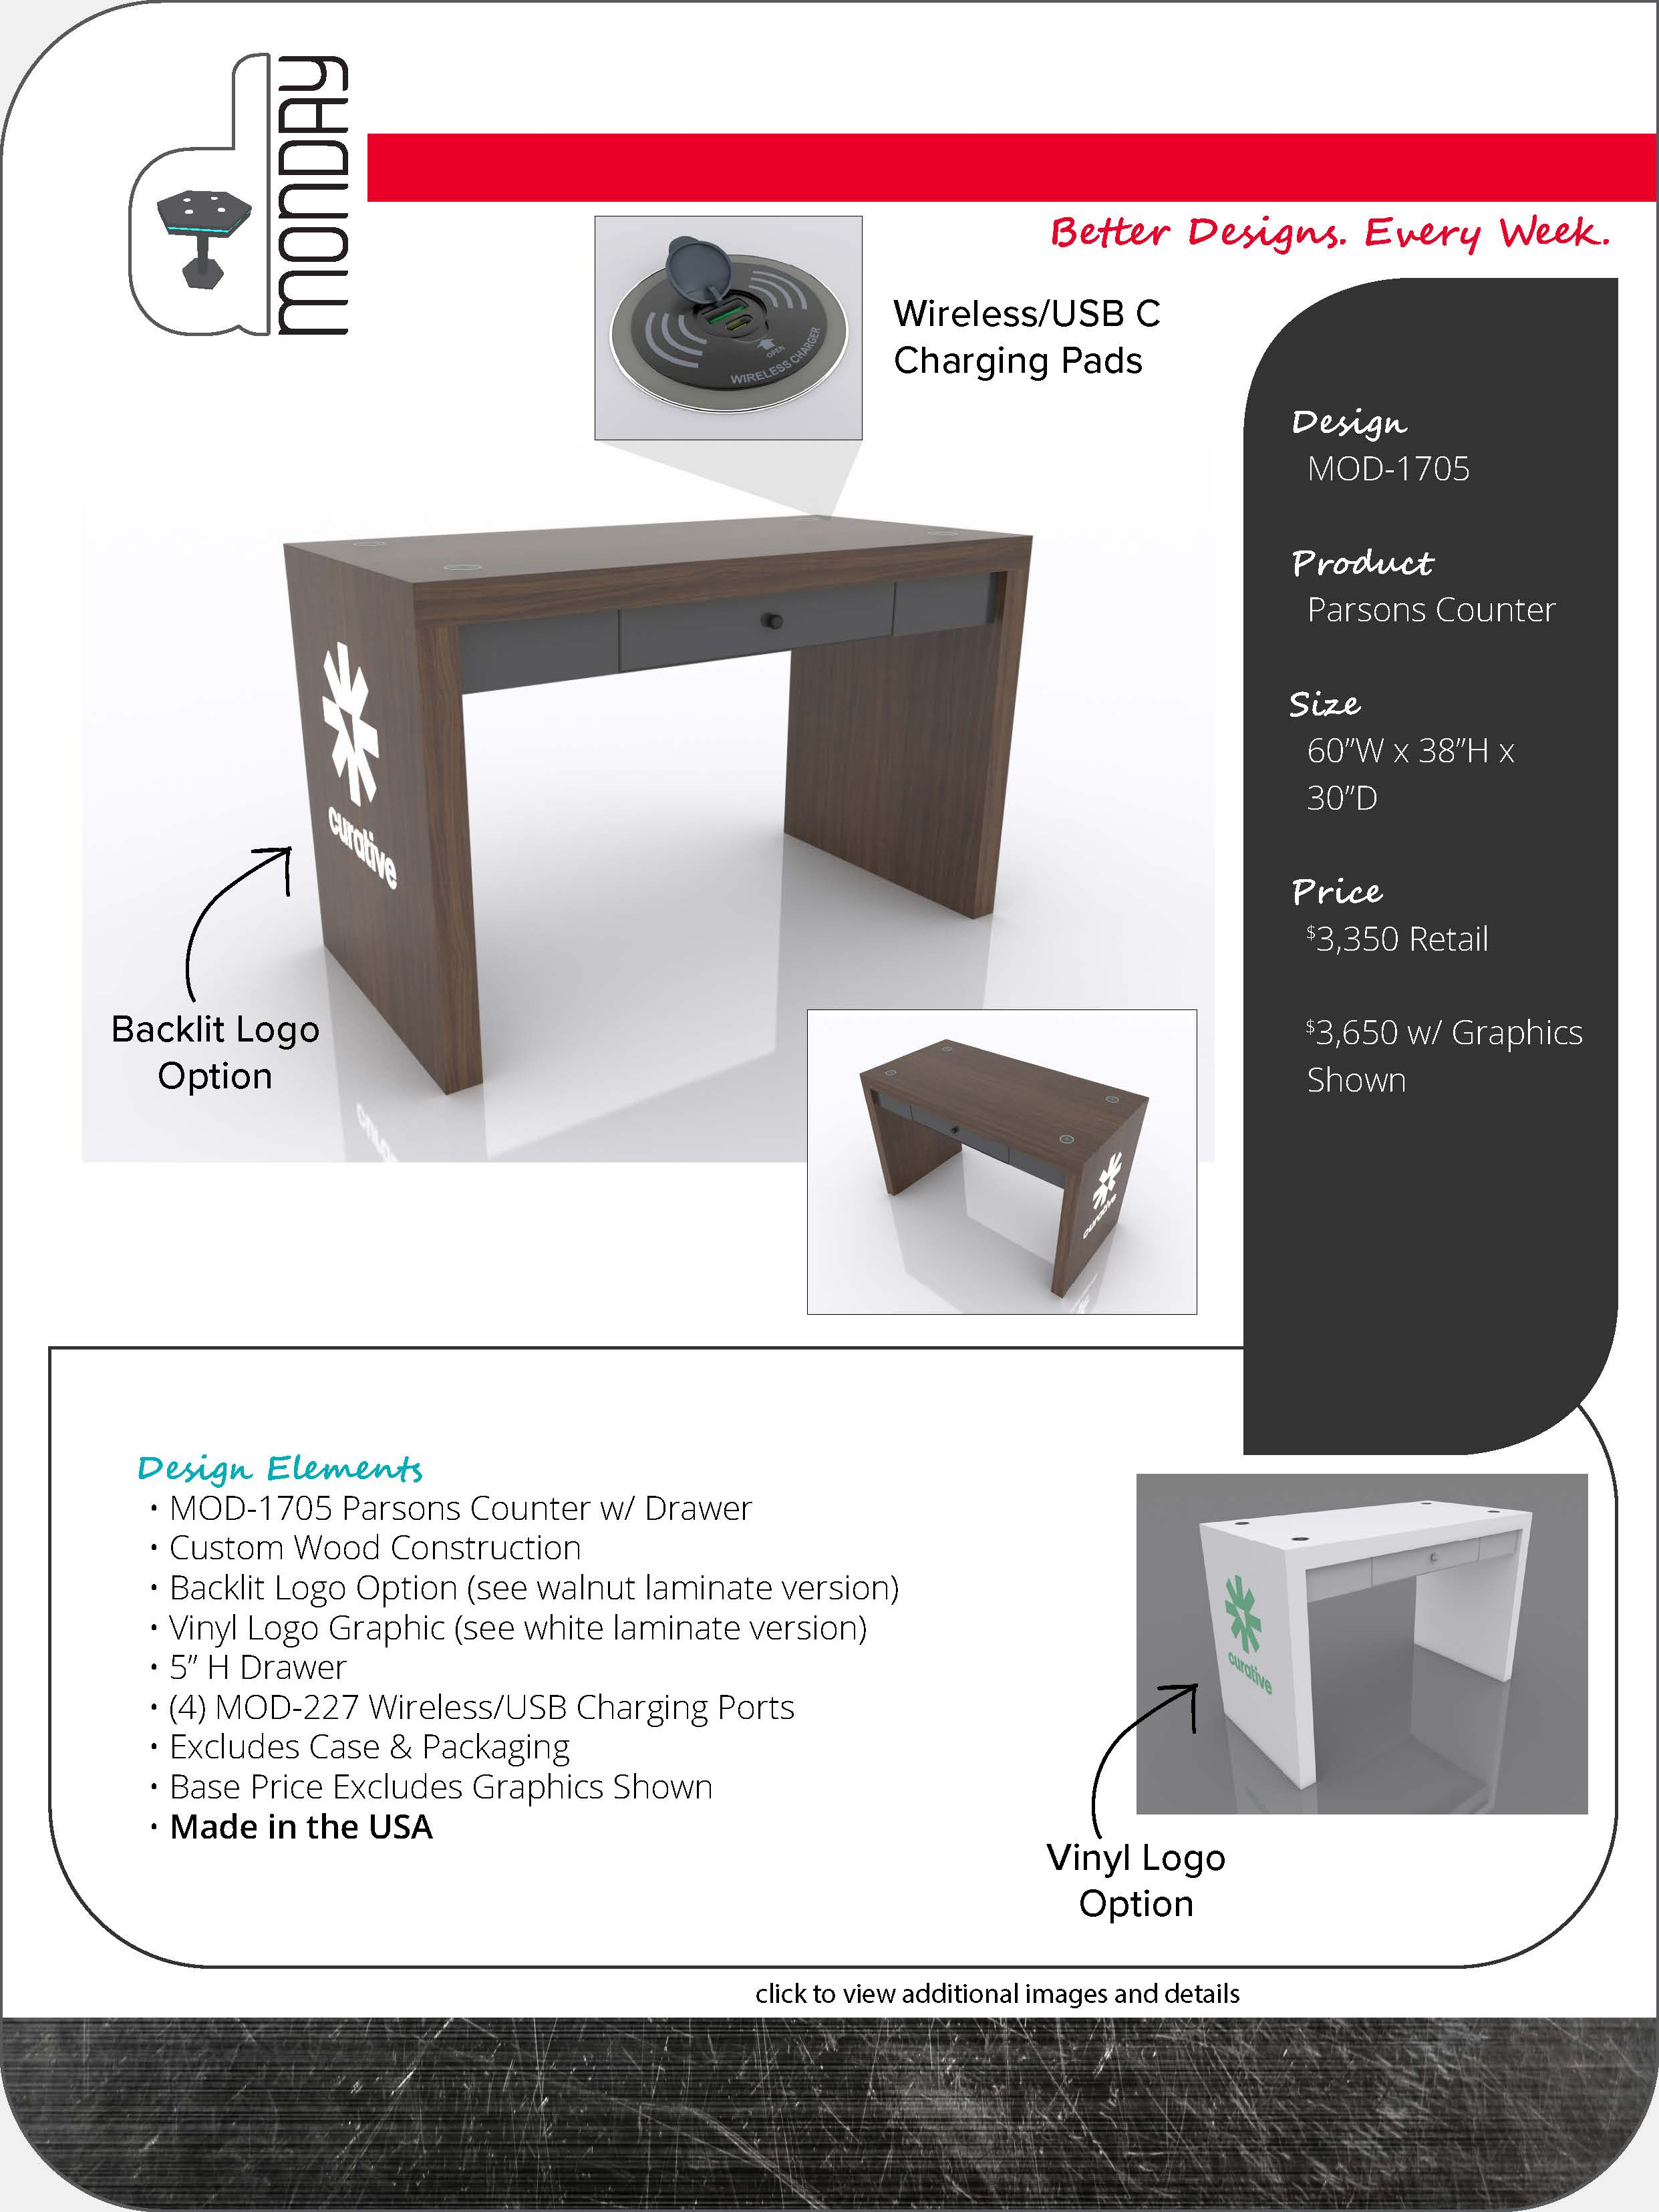 Parsons Counter with Drawer and Charging Ports